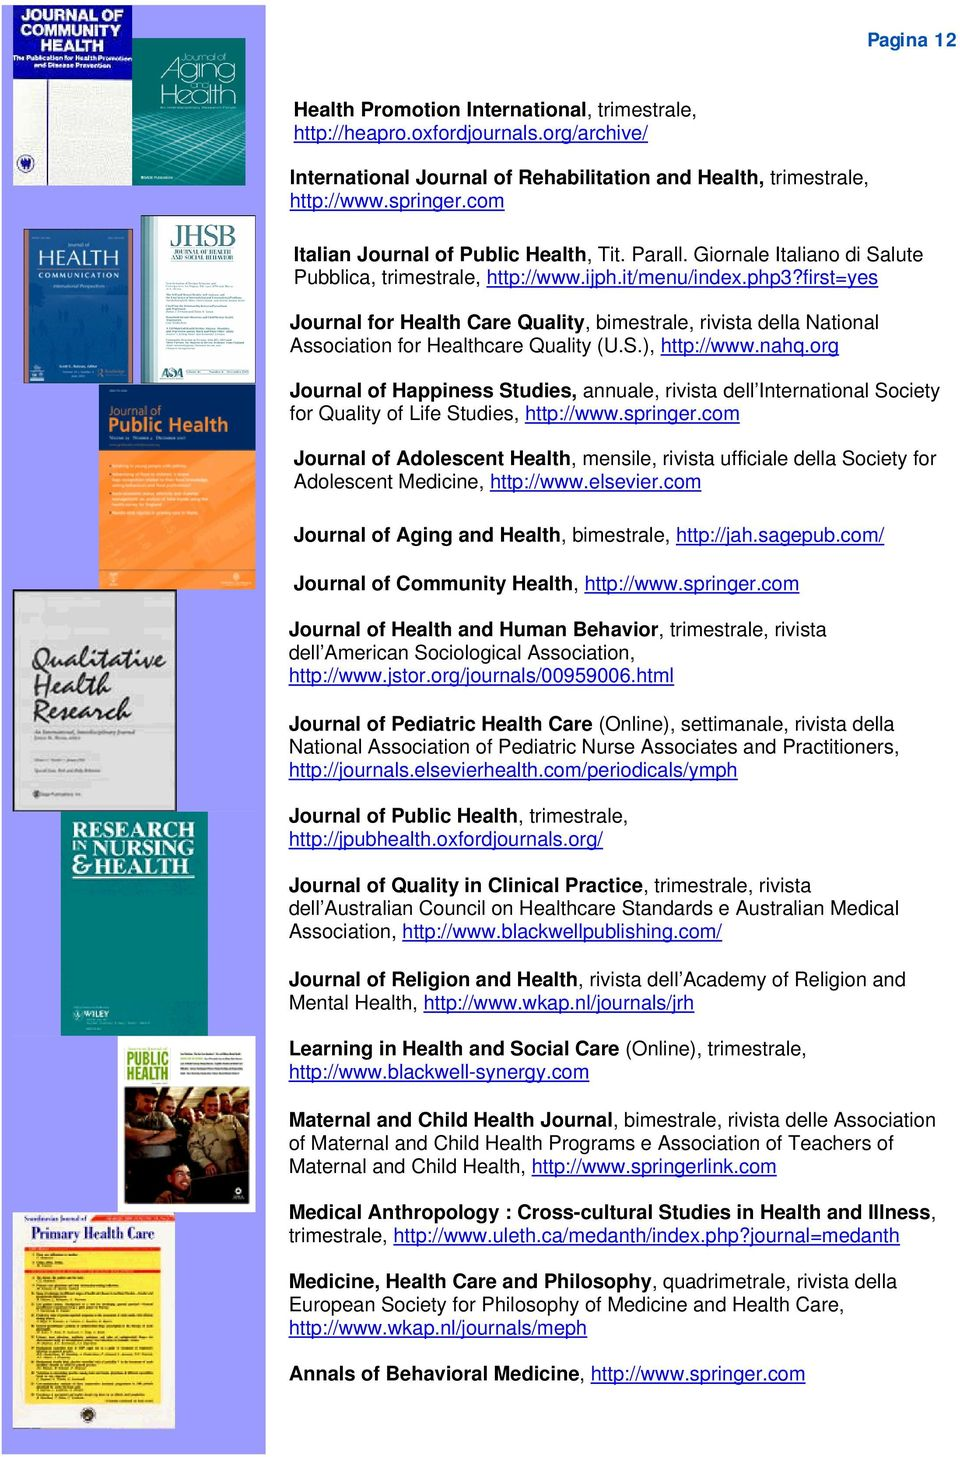 first=yes Journal for Health Care Quality, bimestrale, rivista della National Association for Healthcare Quality (U.S.), http://www.nahq.